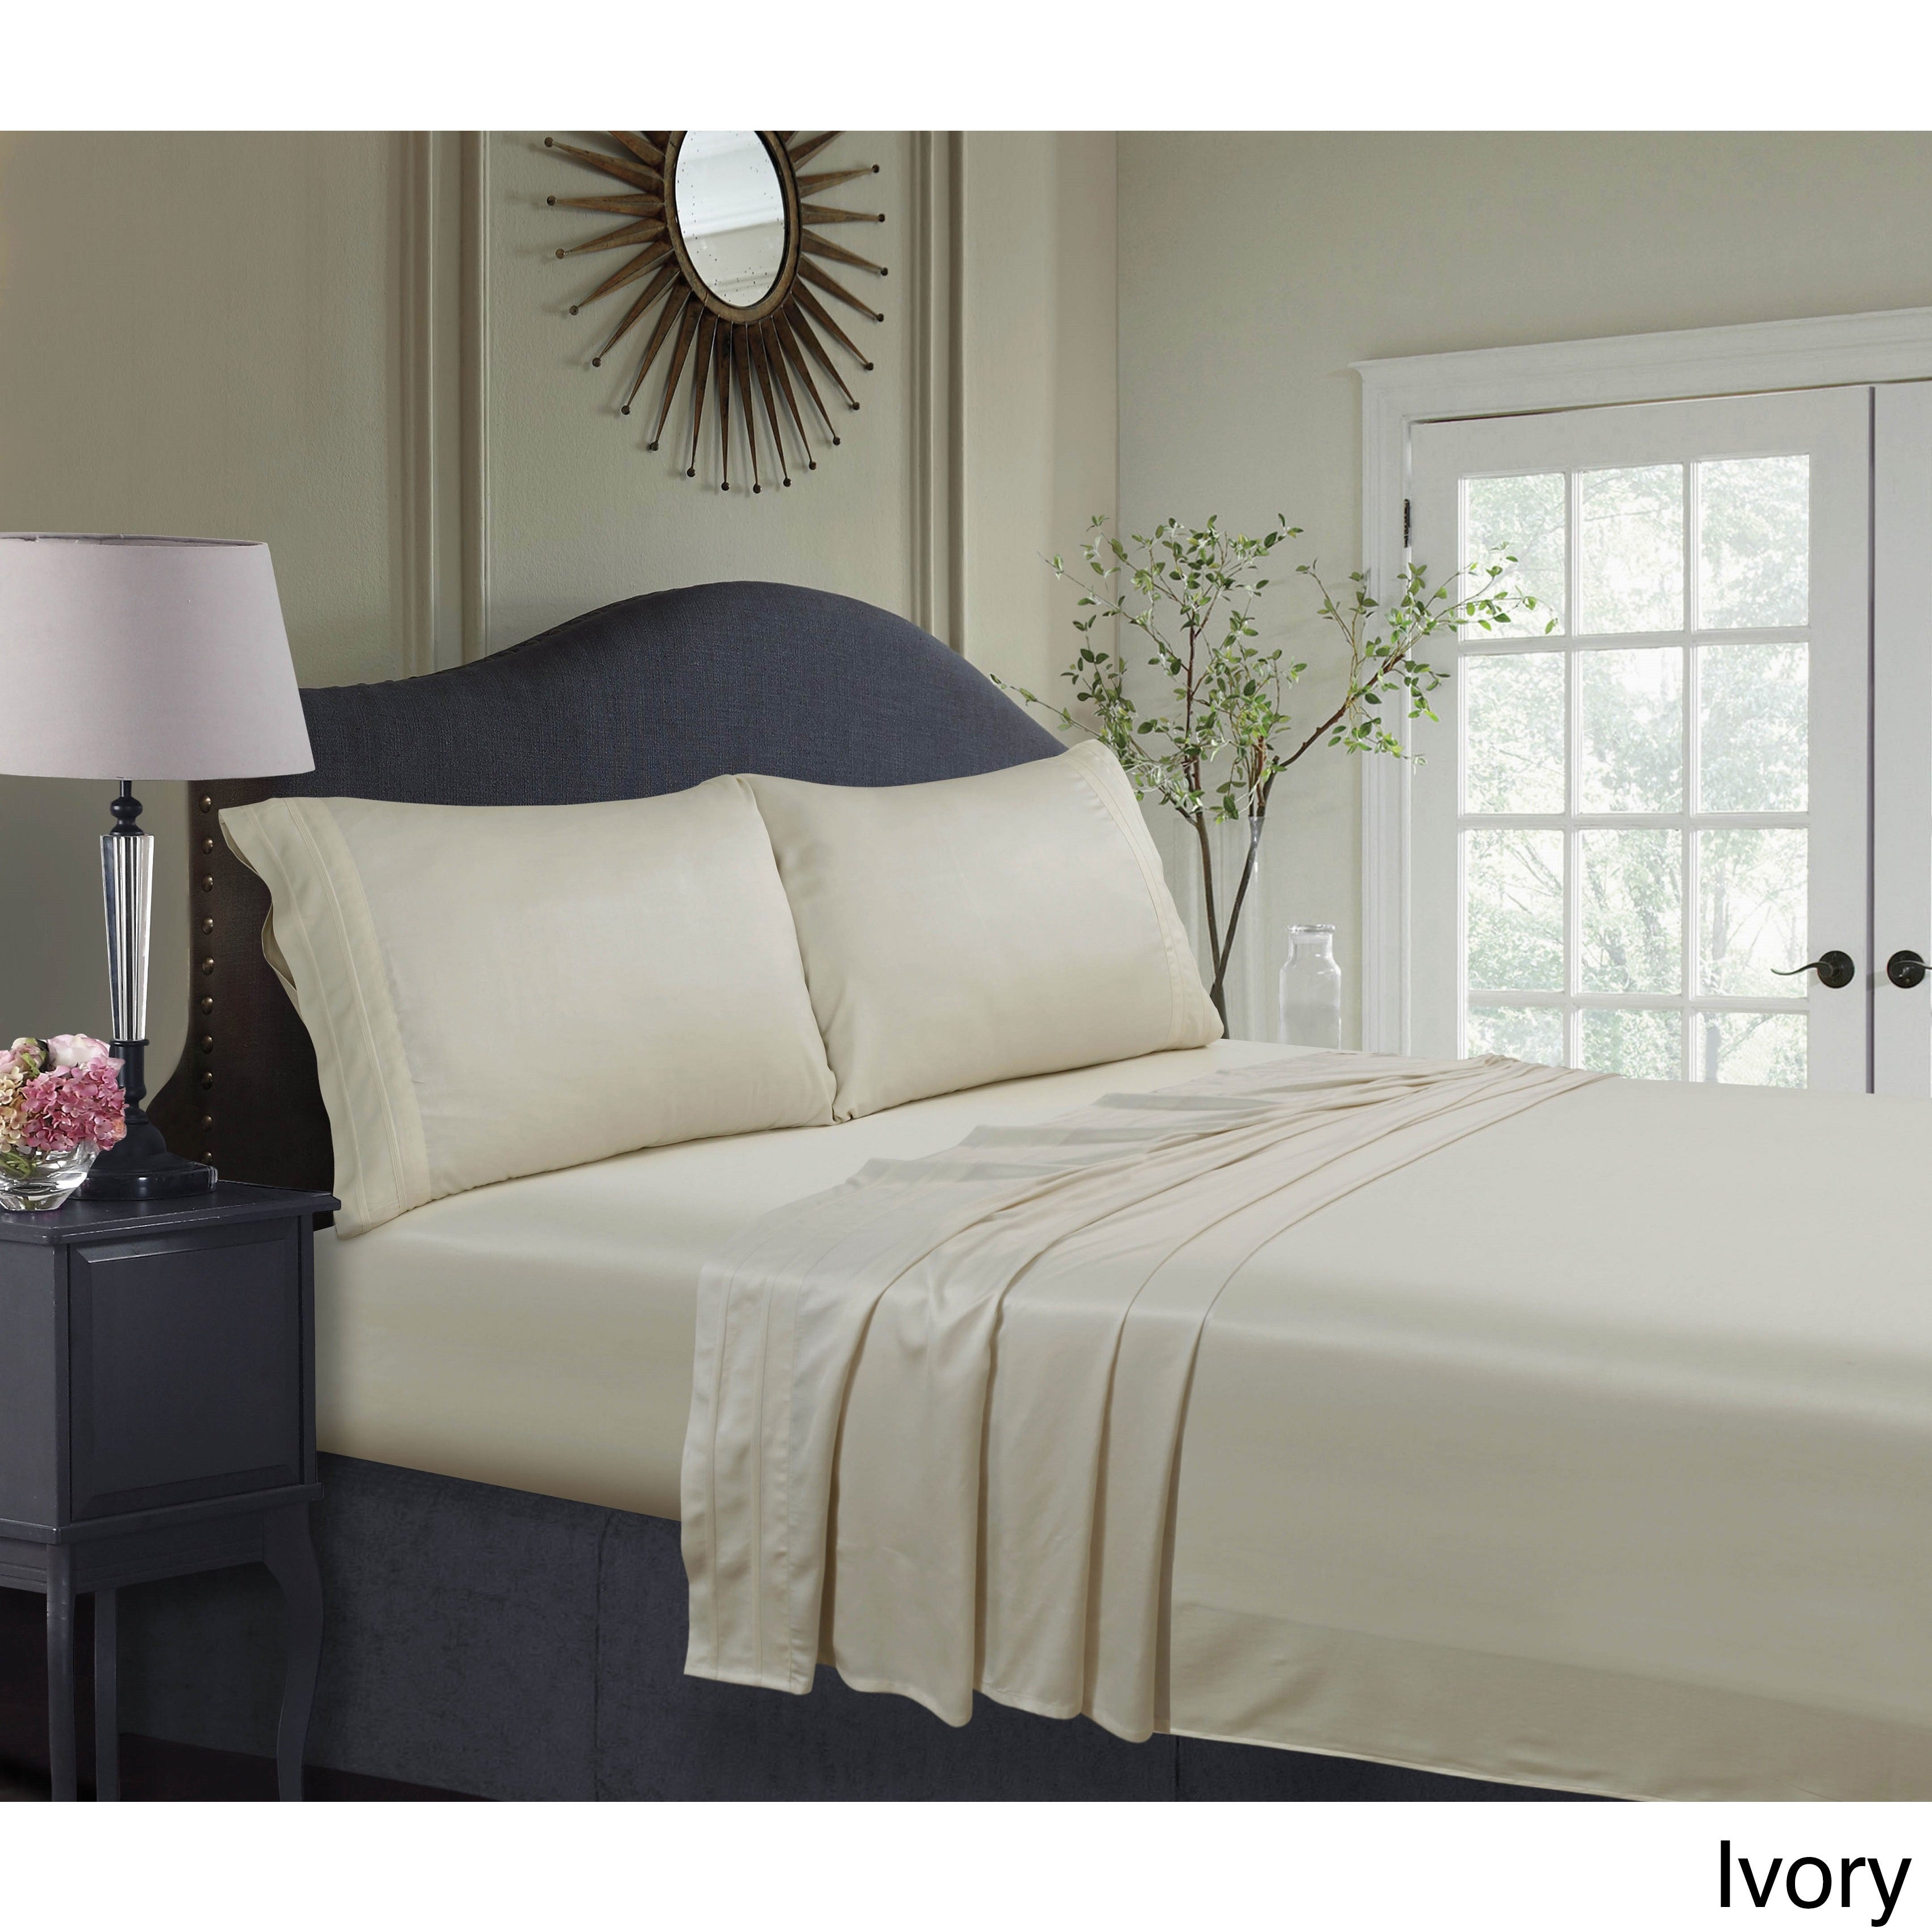 blankets luxury bed x harbor bedding collections bamboo sheets duvet